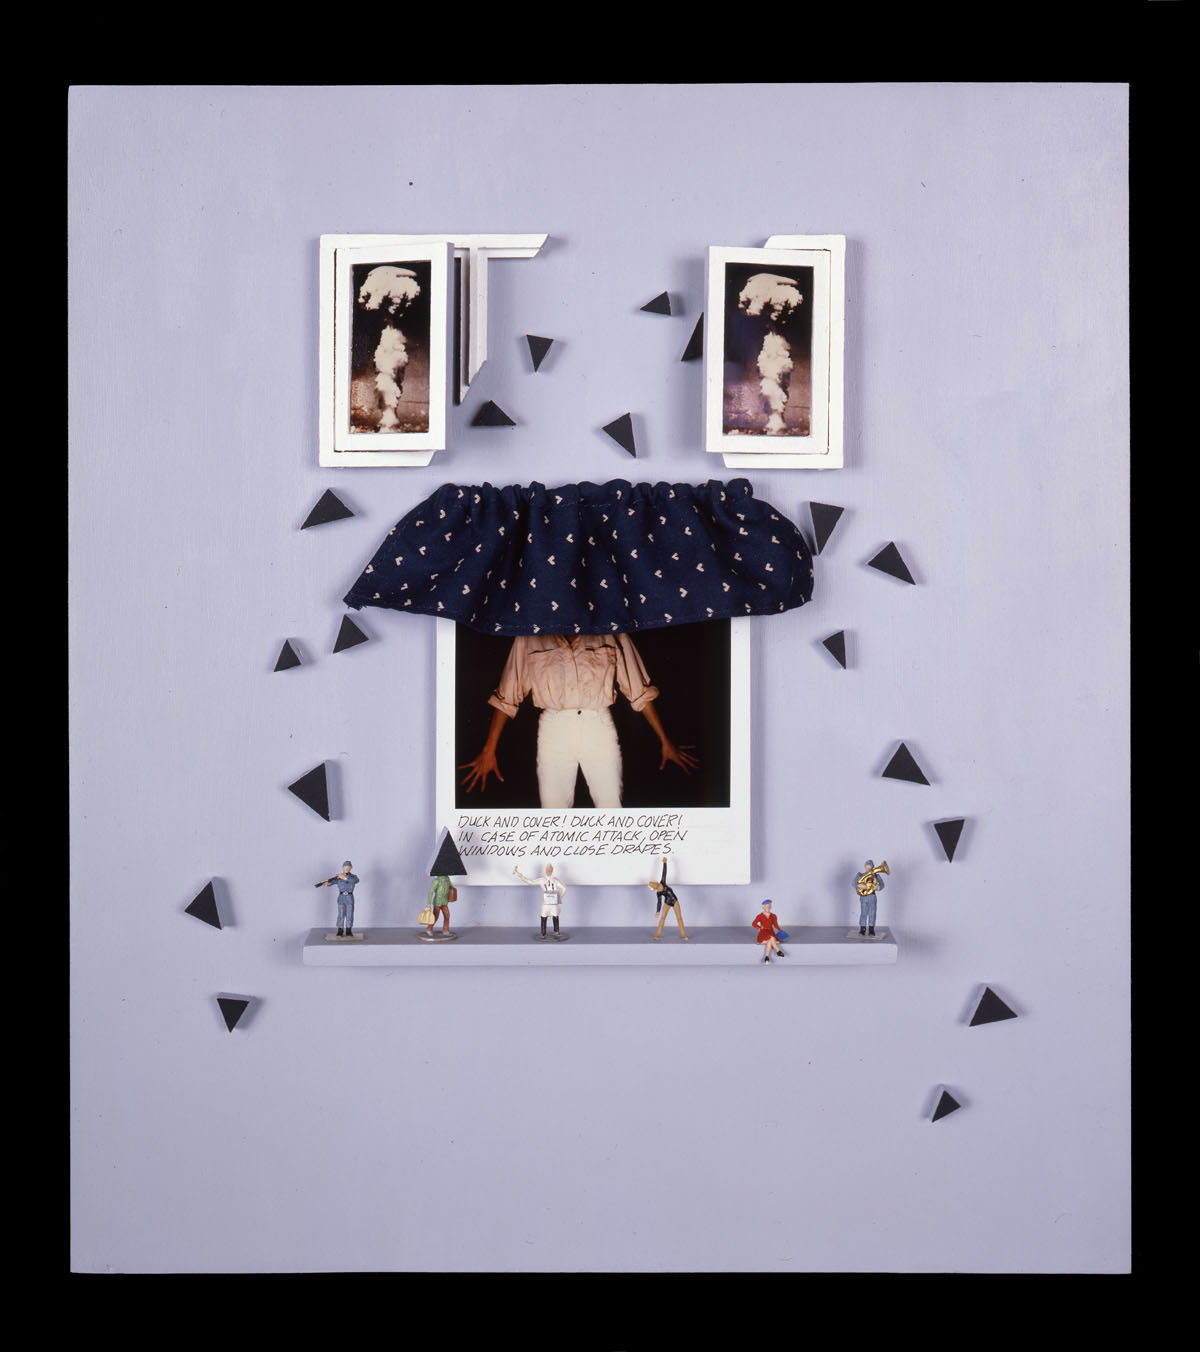 "Duck and Cover 2   (one of three pieces) 12""x13""x2"", Polaroid SX-70 prints, scale model figures, fabric, wood"